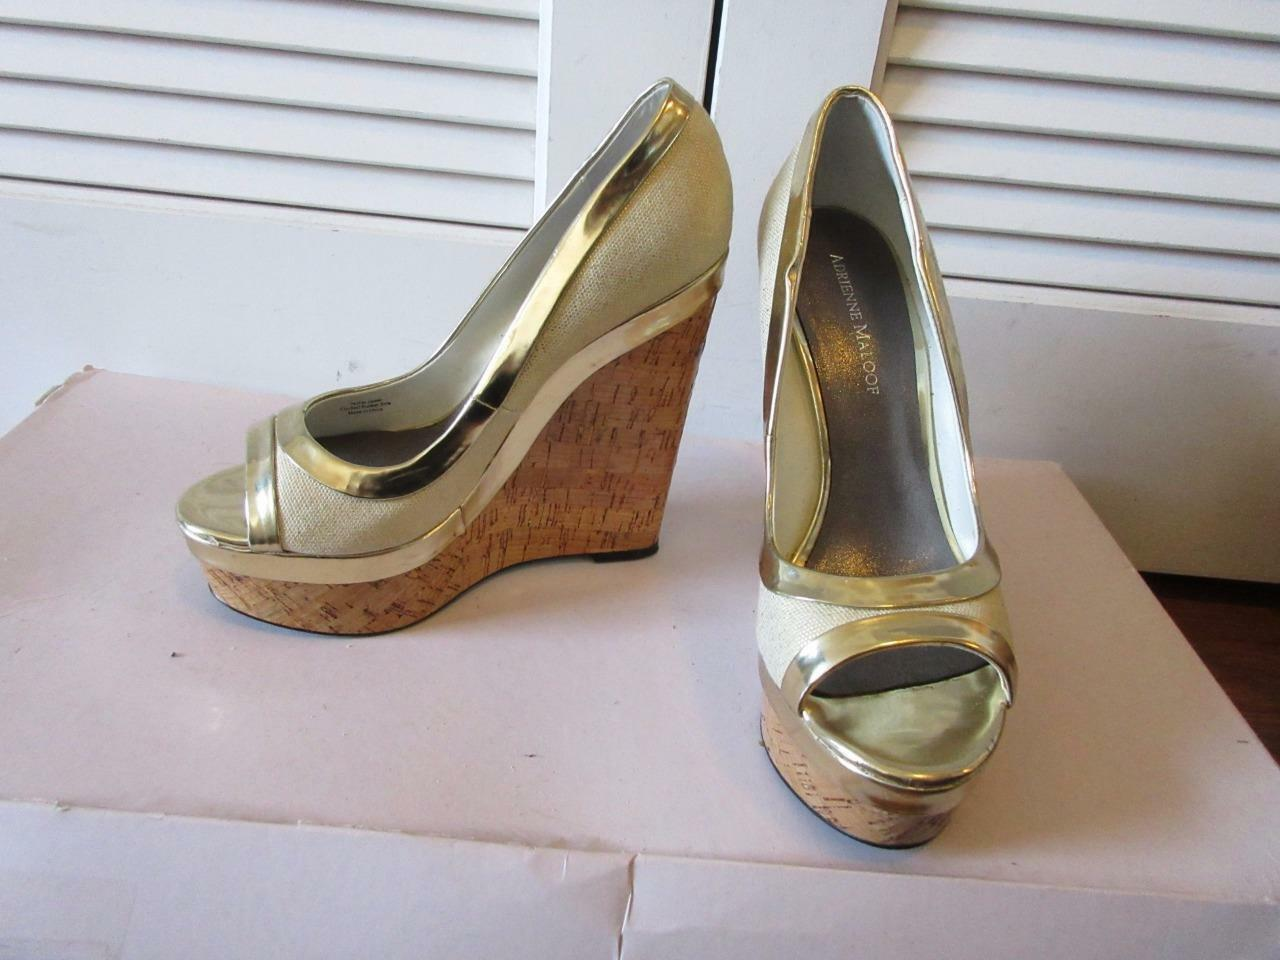 WOMENS ADRIENNE LEATHER MALOOF CREAM CANVAS/GOLD LEATHER ADRIENNE WEDGES SIZE 10M 99434a